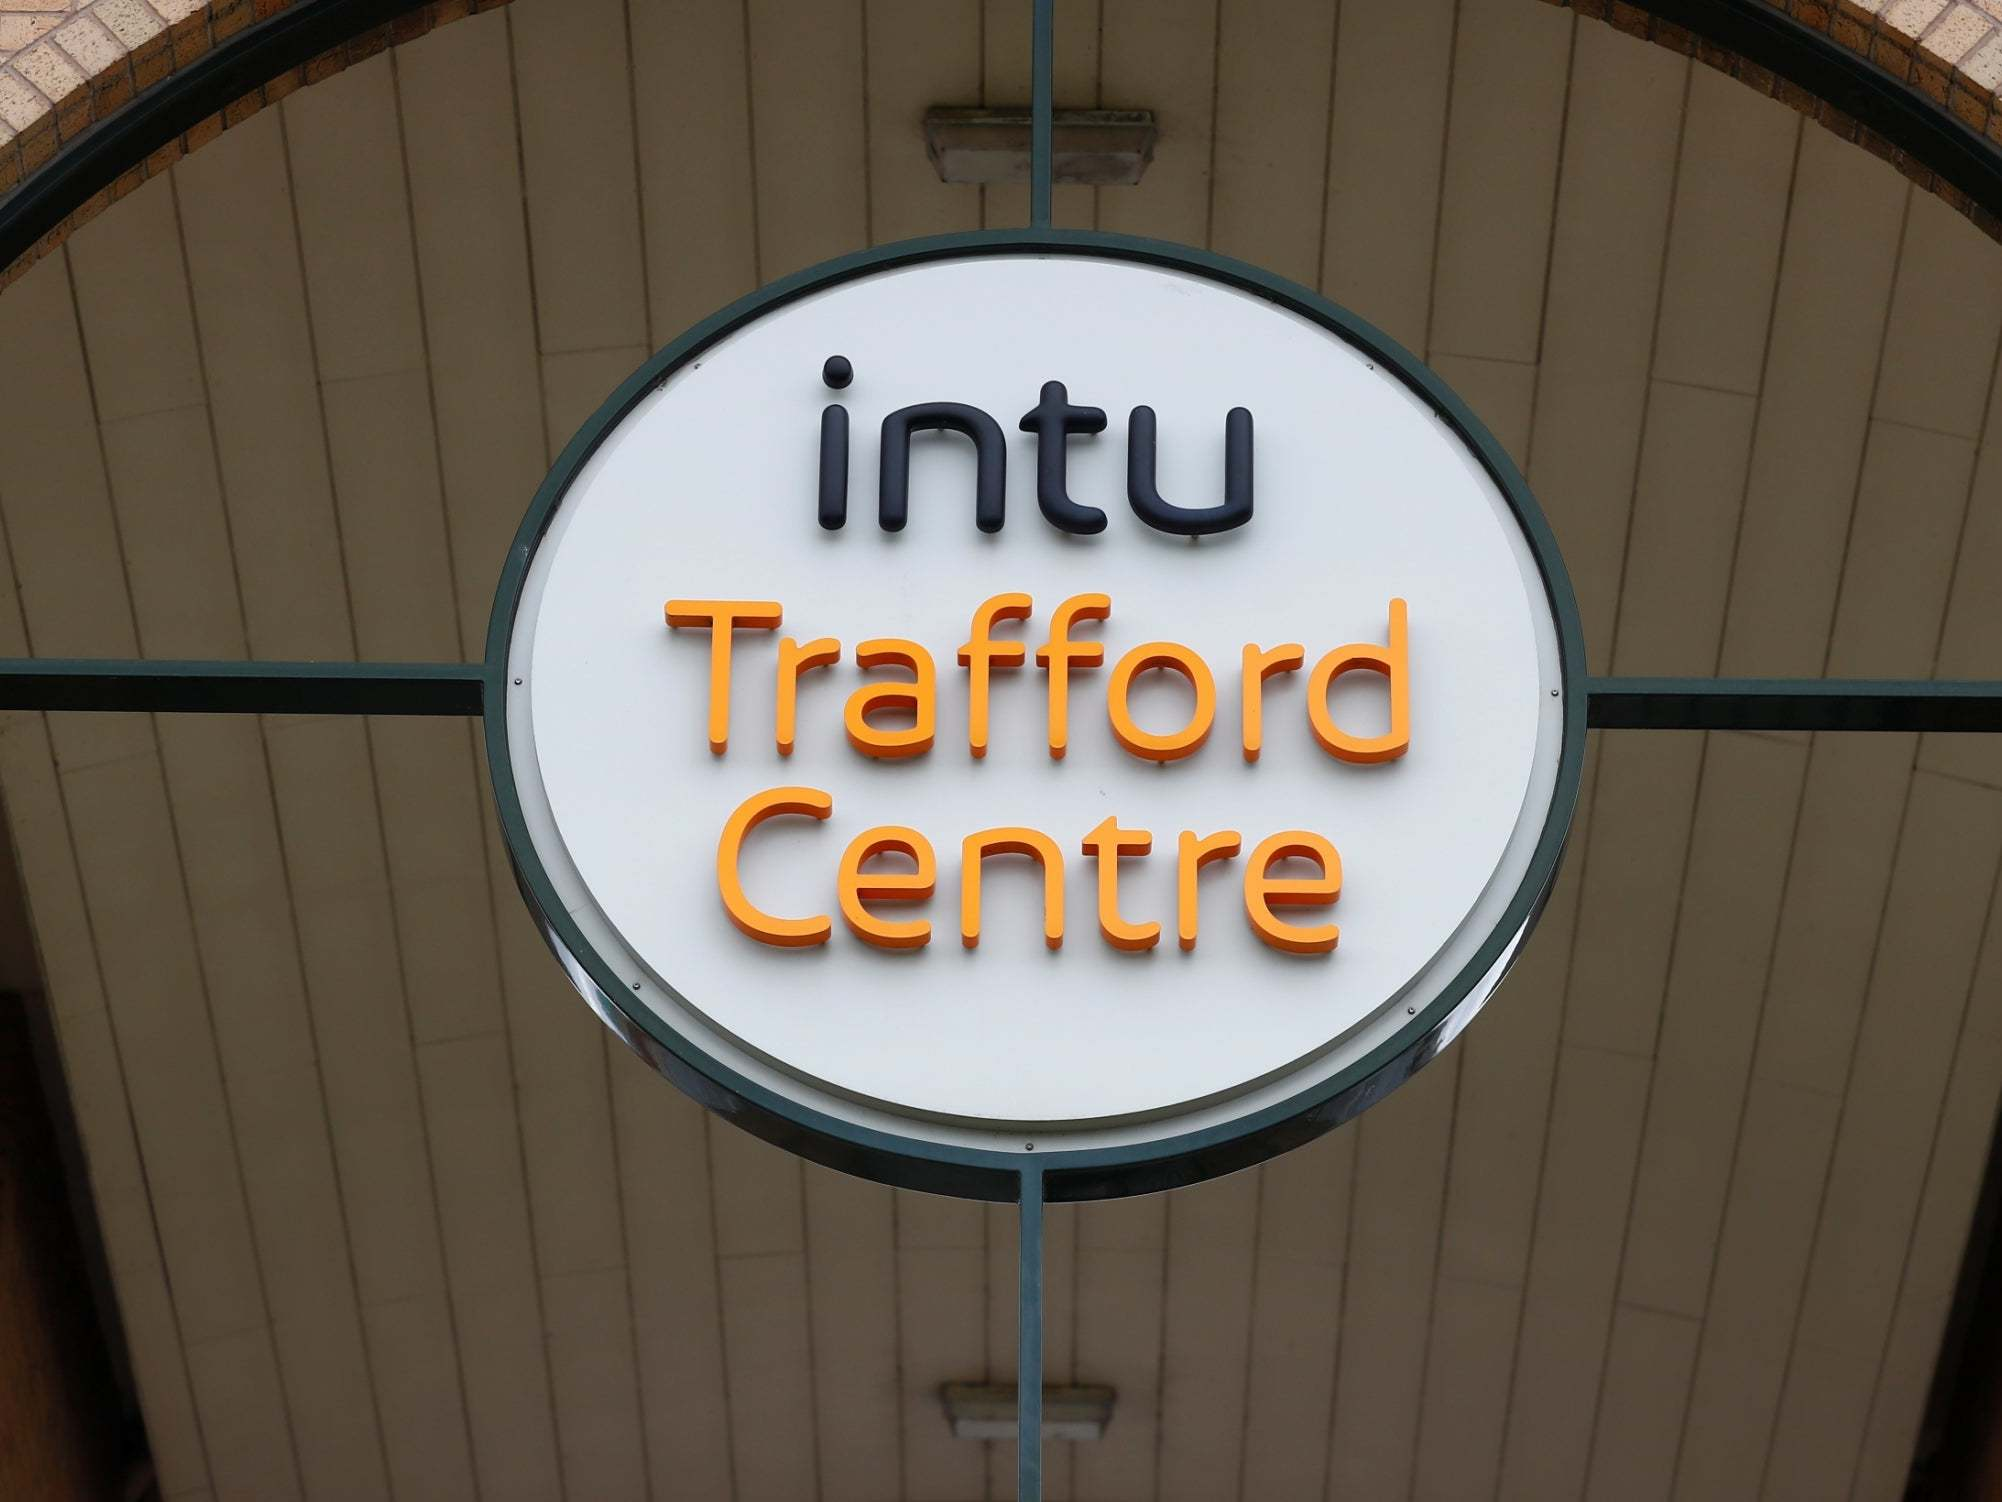 Shopping mall giant Intu likely to go into administration as debt talks fail